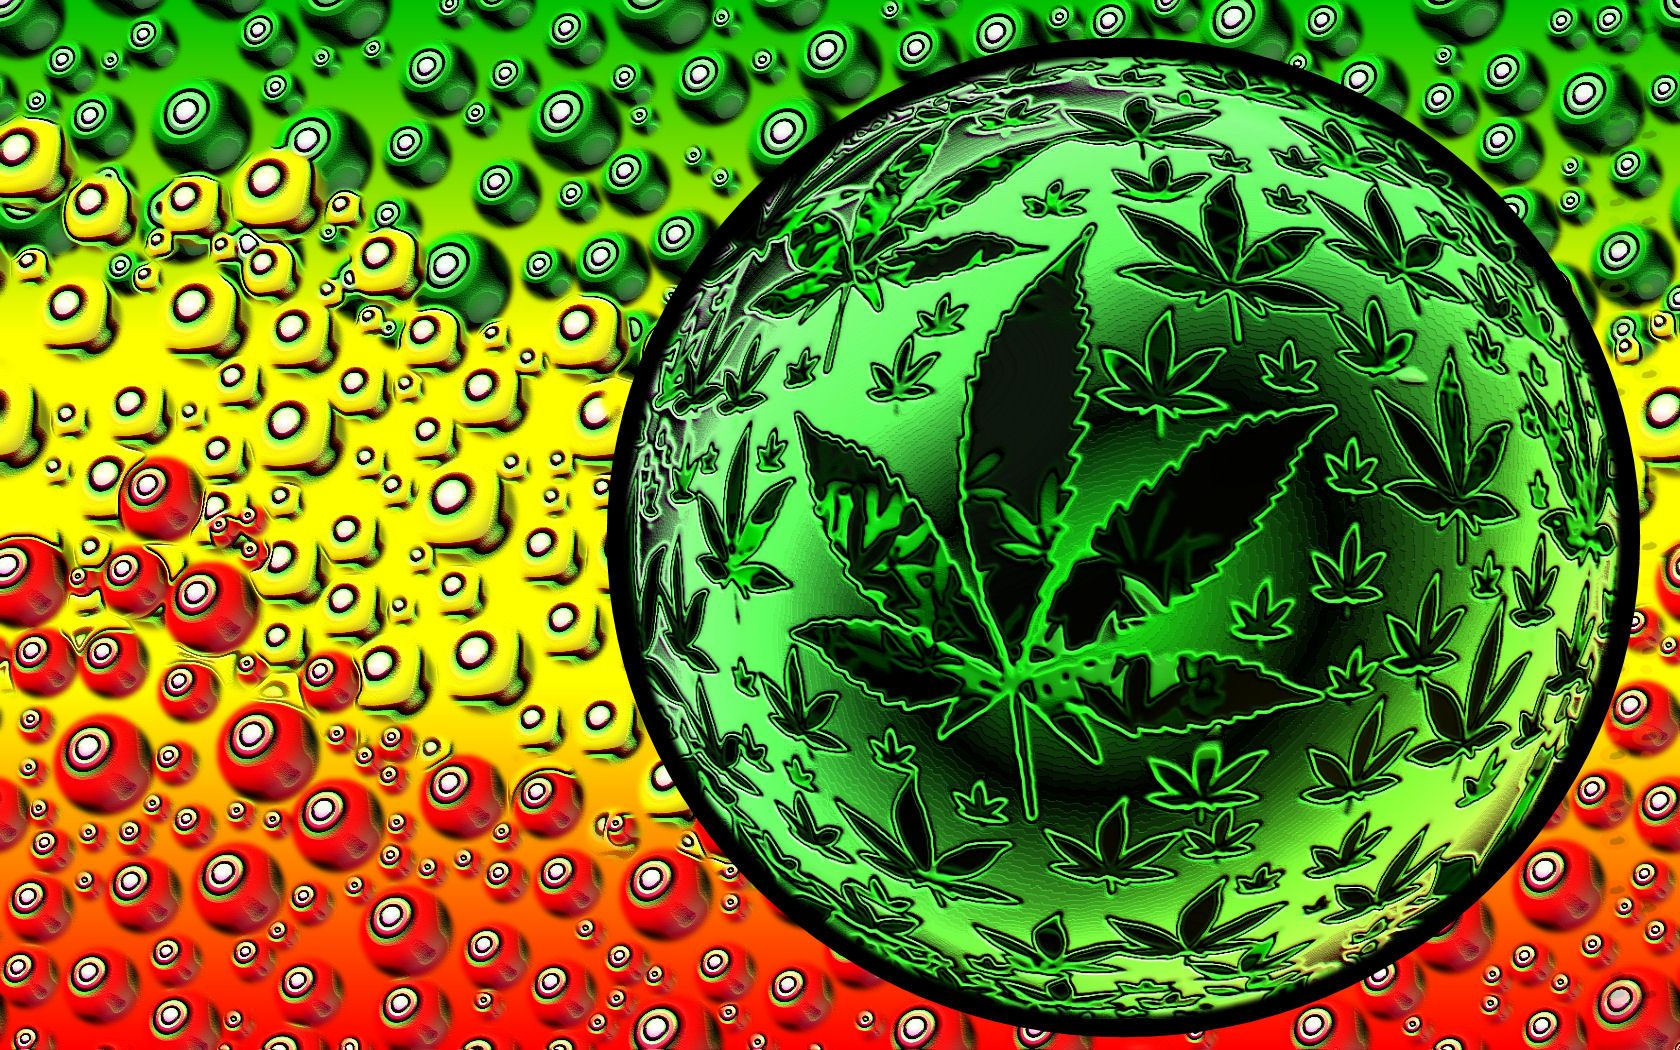 Wallpaper iphone rasta - 1080p Hd Wallpaper Trippy Sookie Rasta Leaf Wallpaper By Sookiesooker Customization Wallpaper